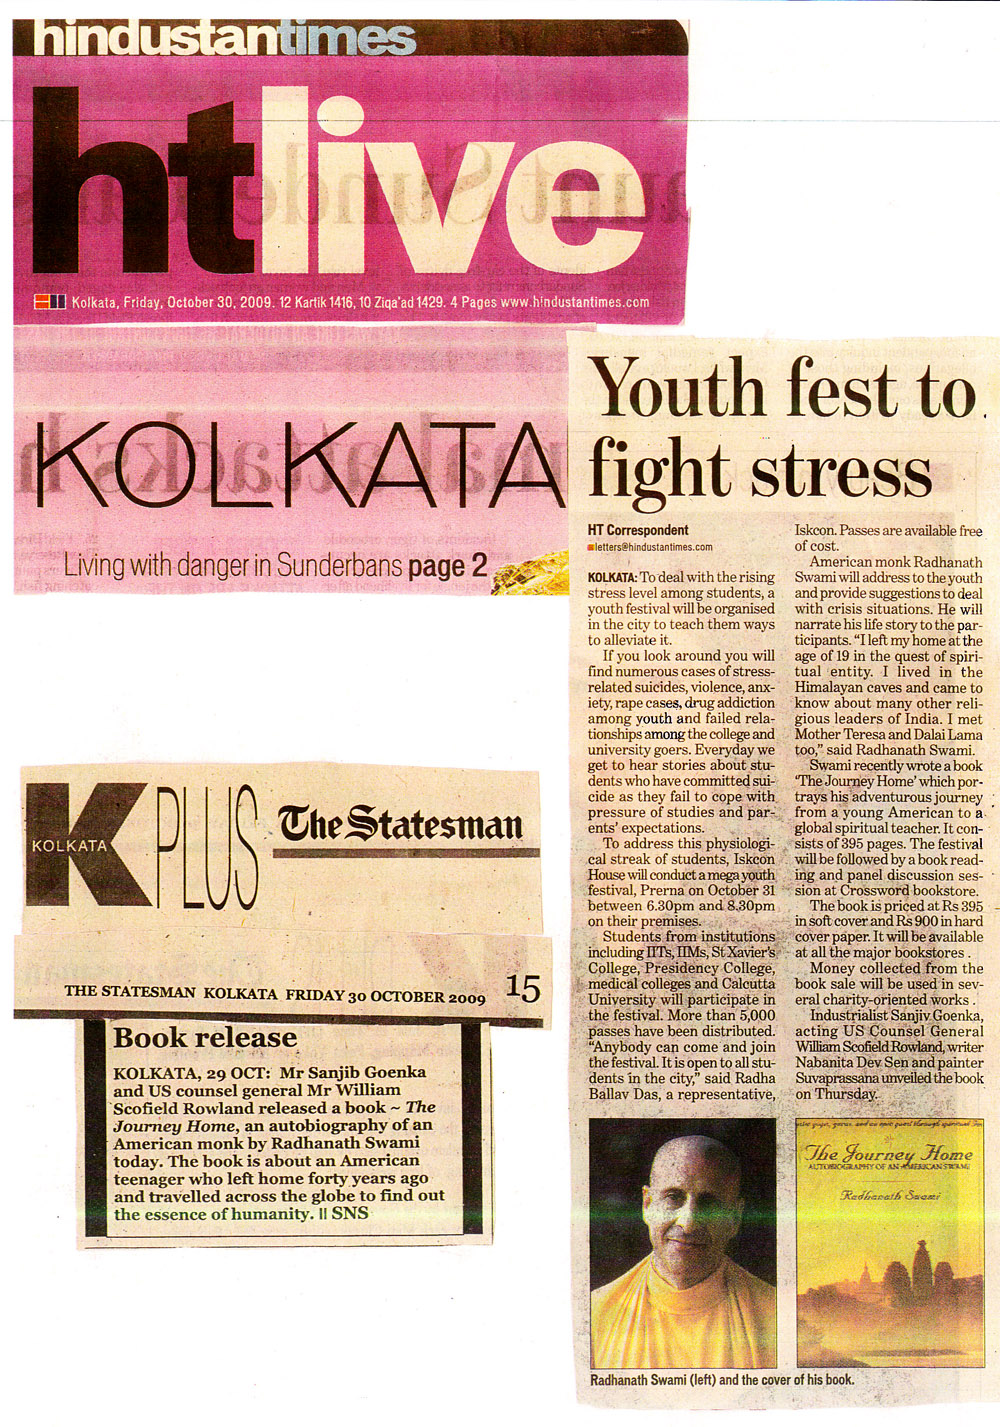 Radhanath Swami in Hindusthan Times and Statesman